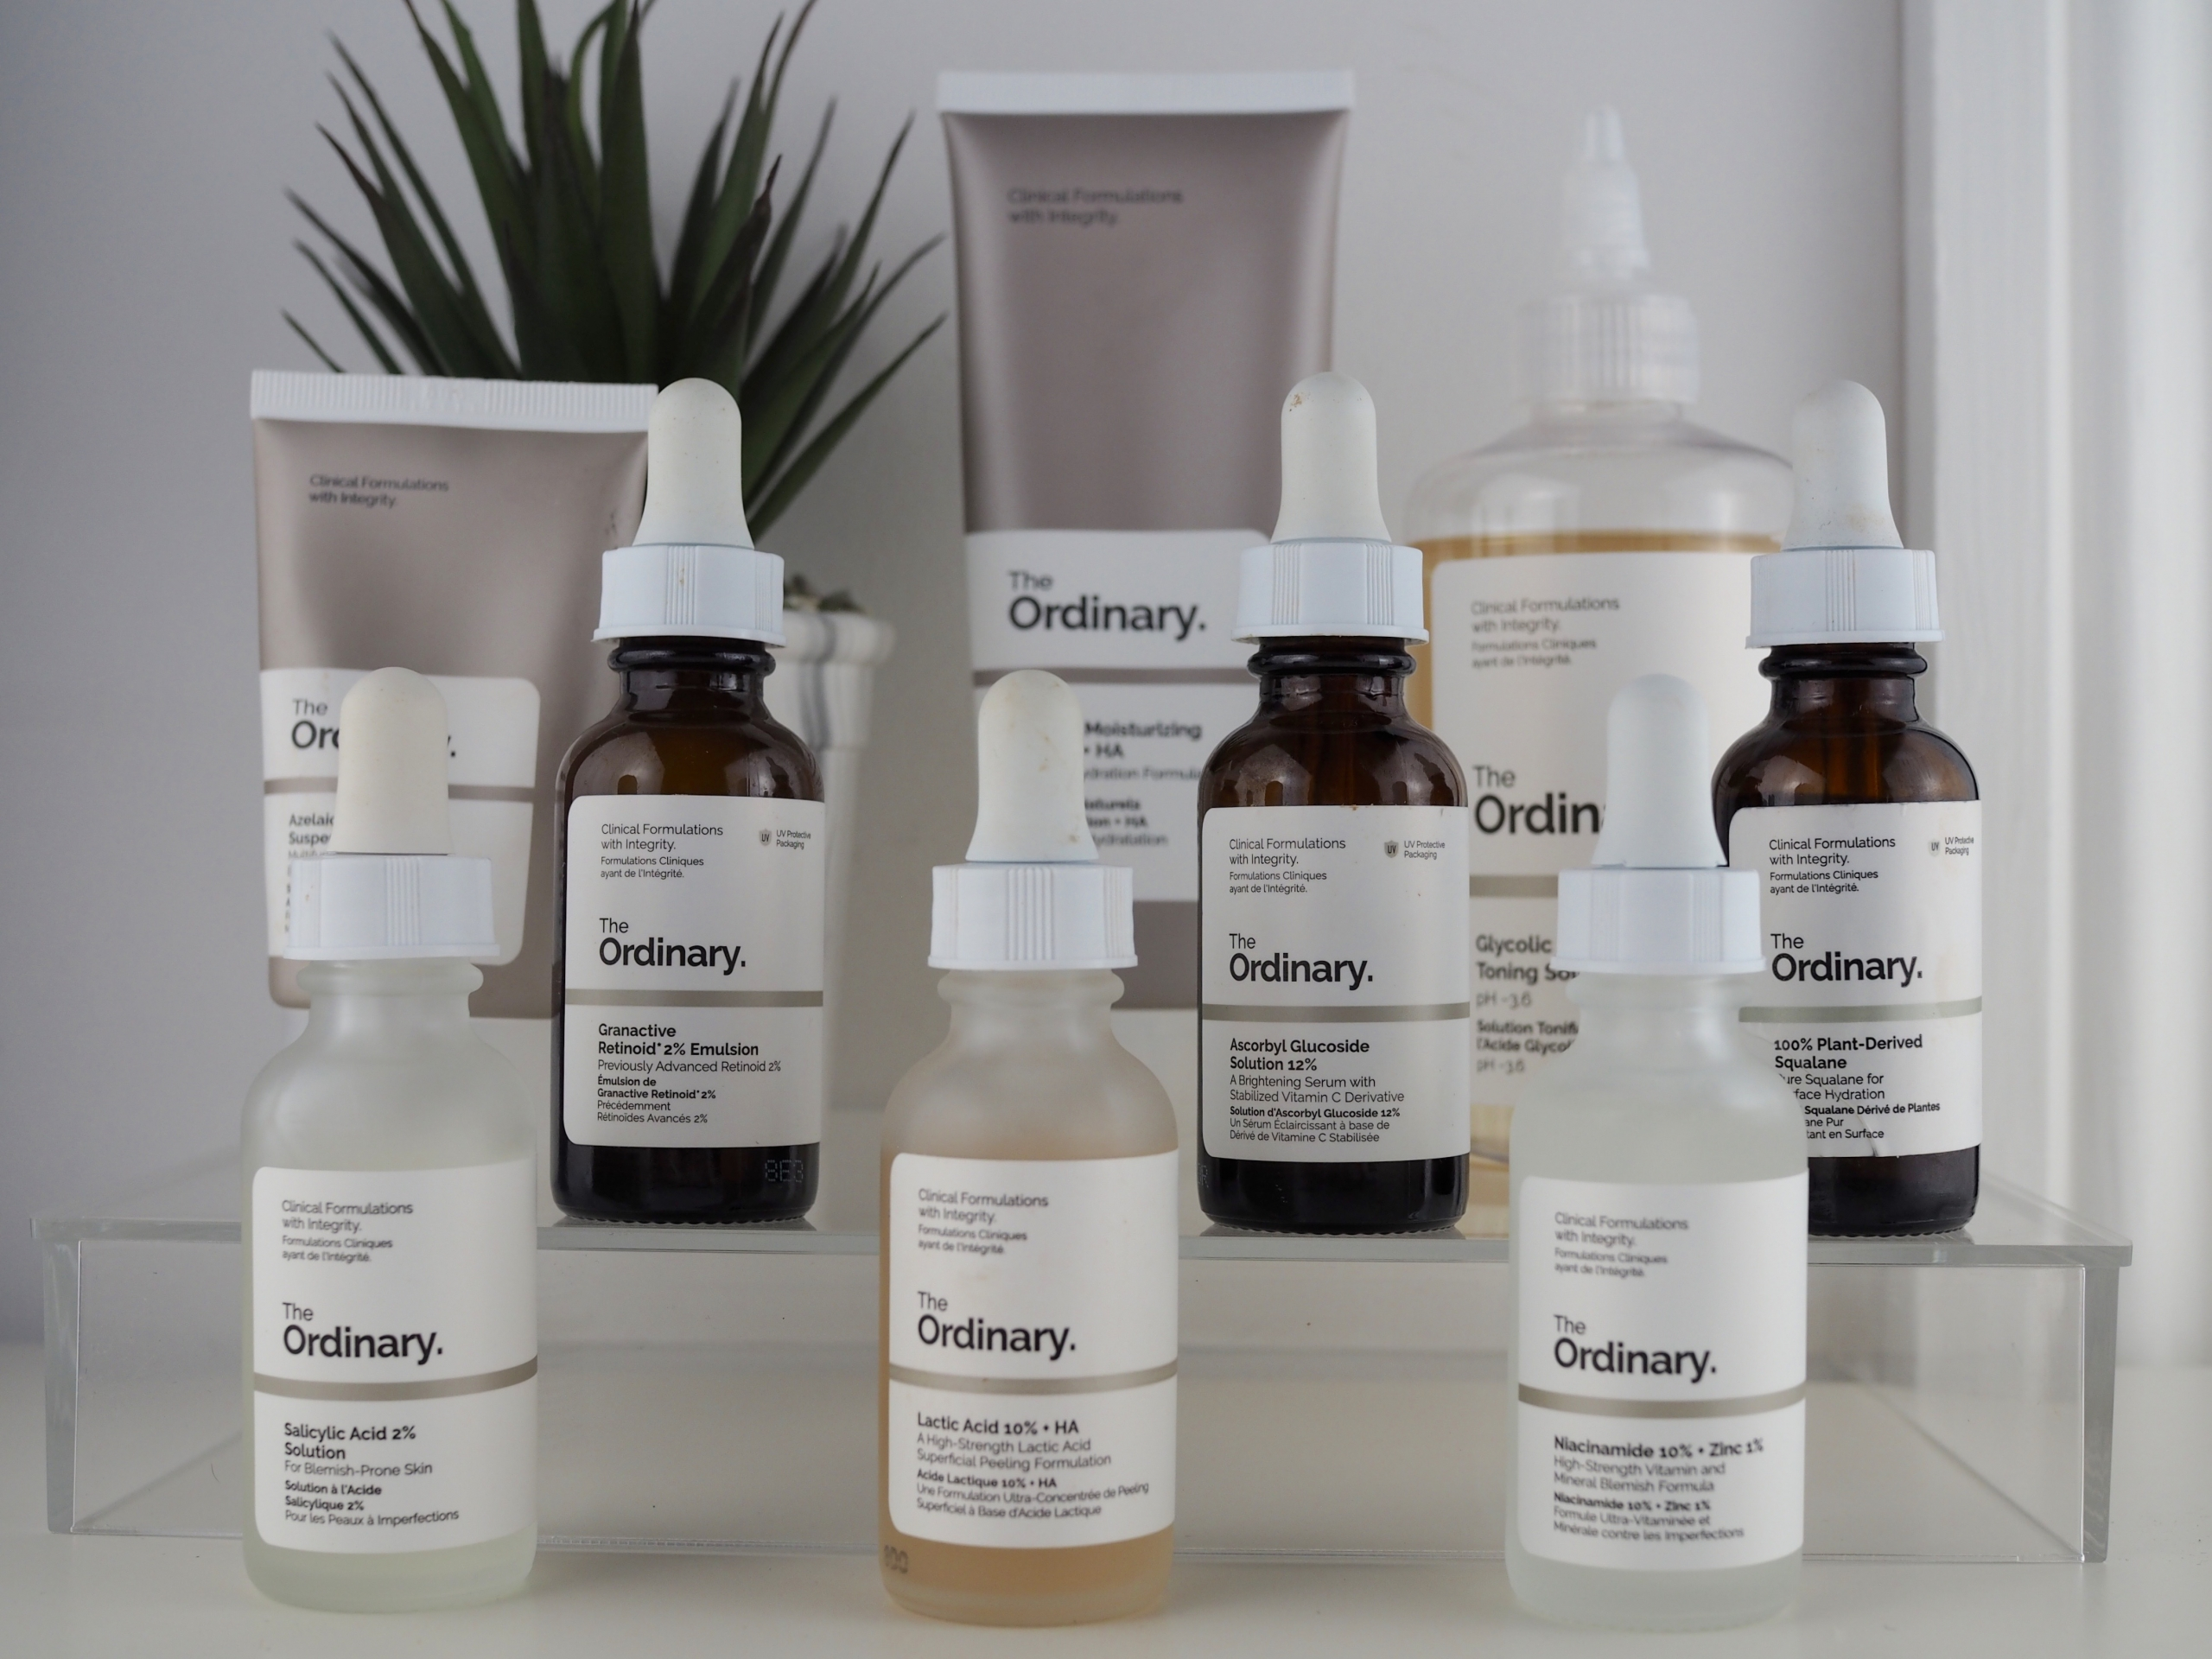 Honest review of the ordinary skincare